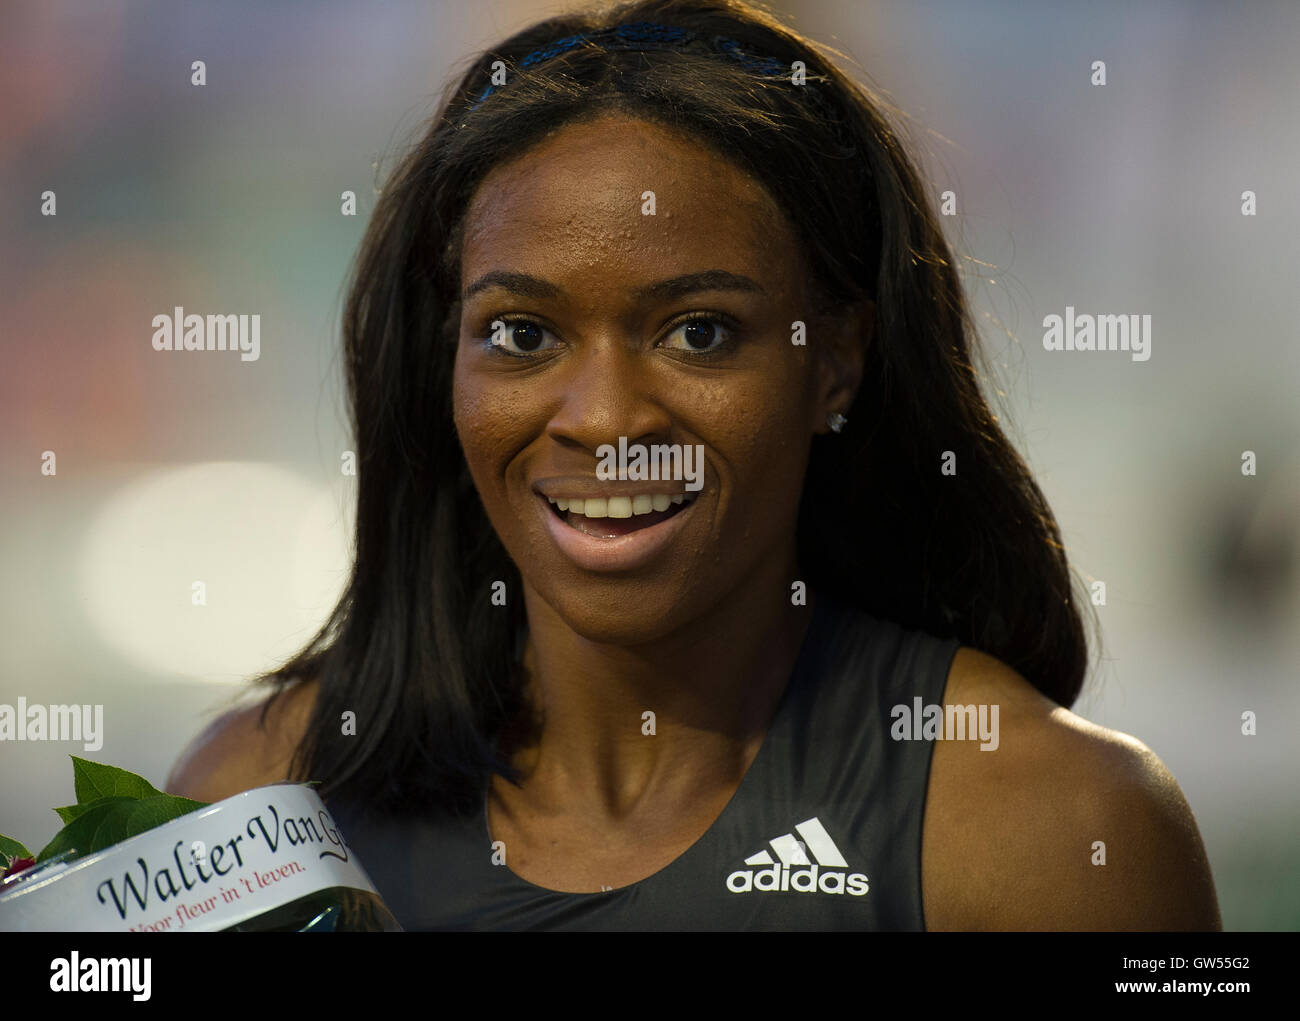 BRUSSELS, BELGIUM - SEPTEMBER 9: Cassandra Tate competing in the Women's 400m Hurdles at the AG Insurance Memorial - Stock Image